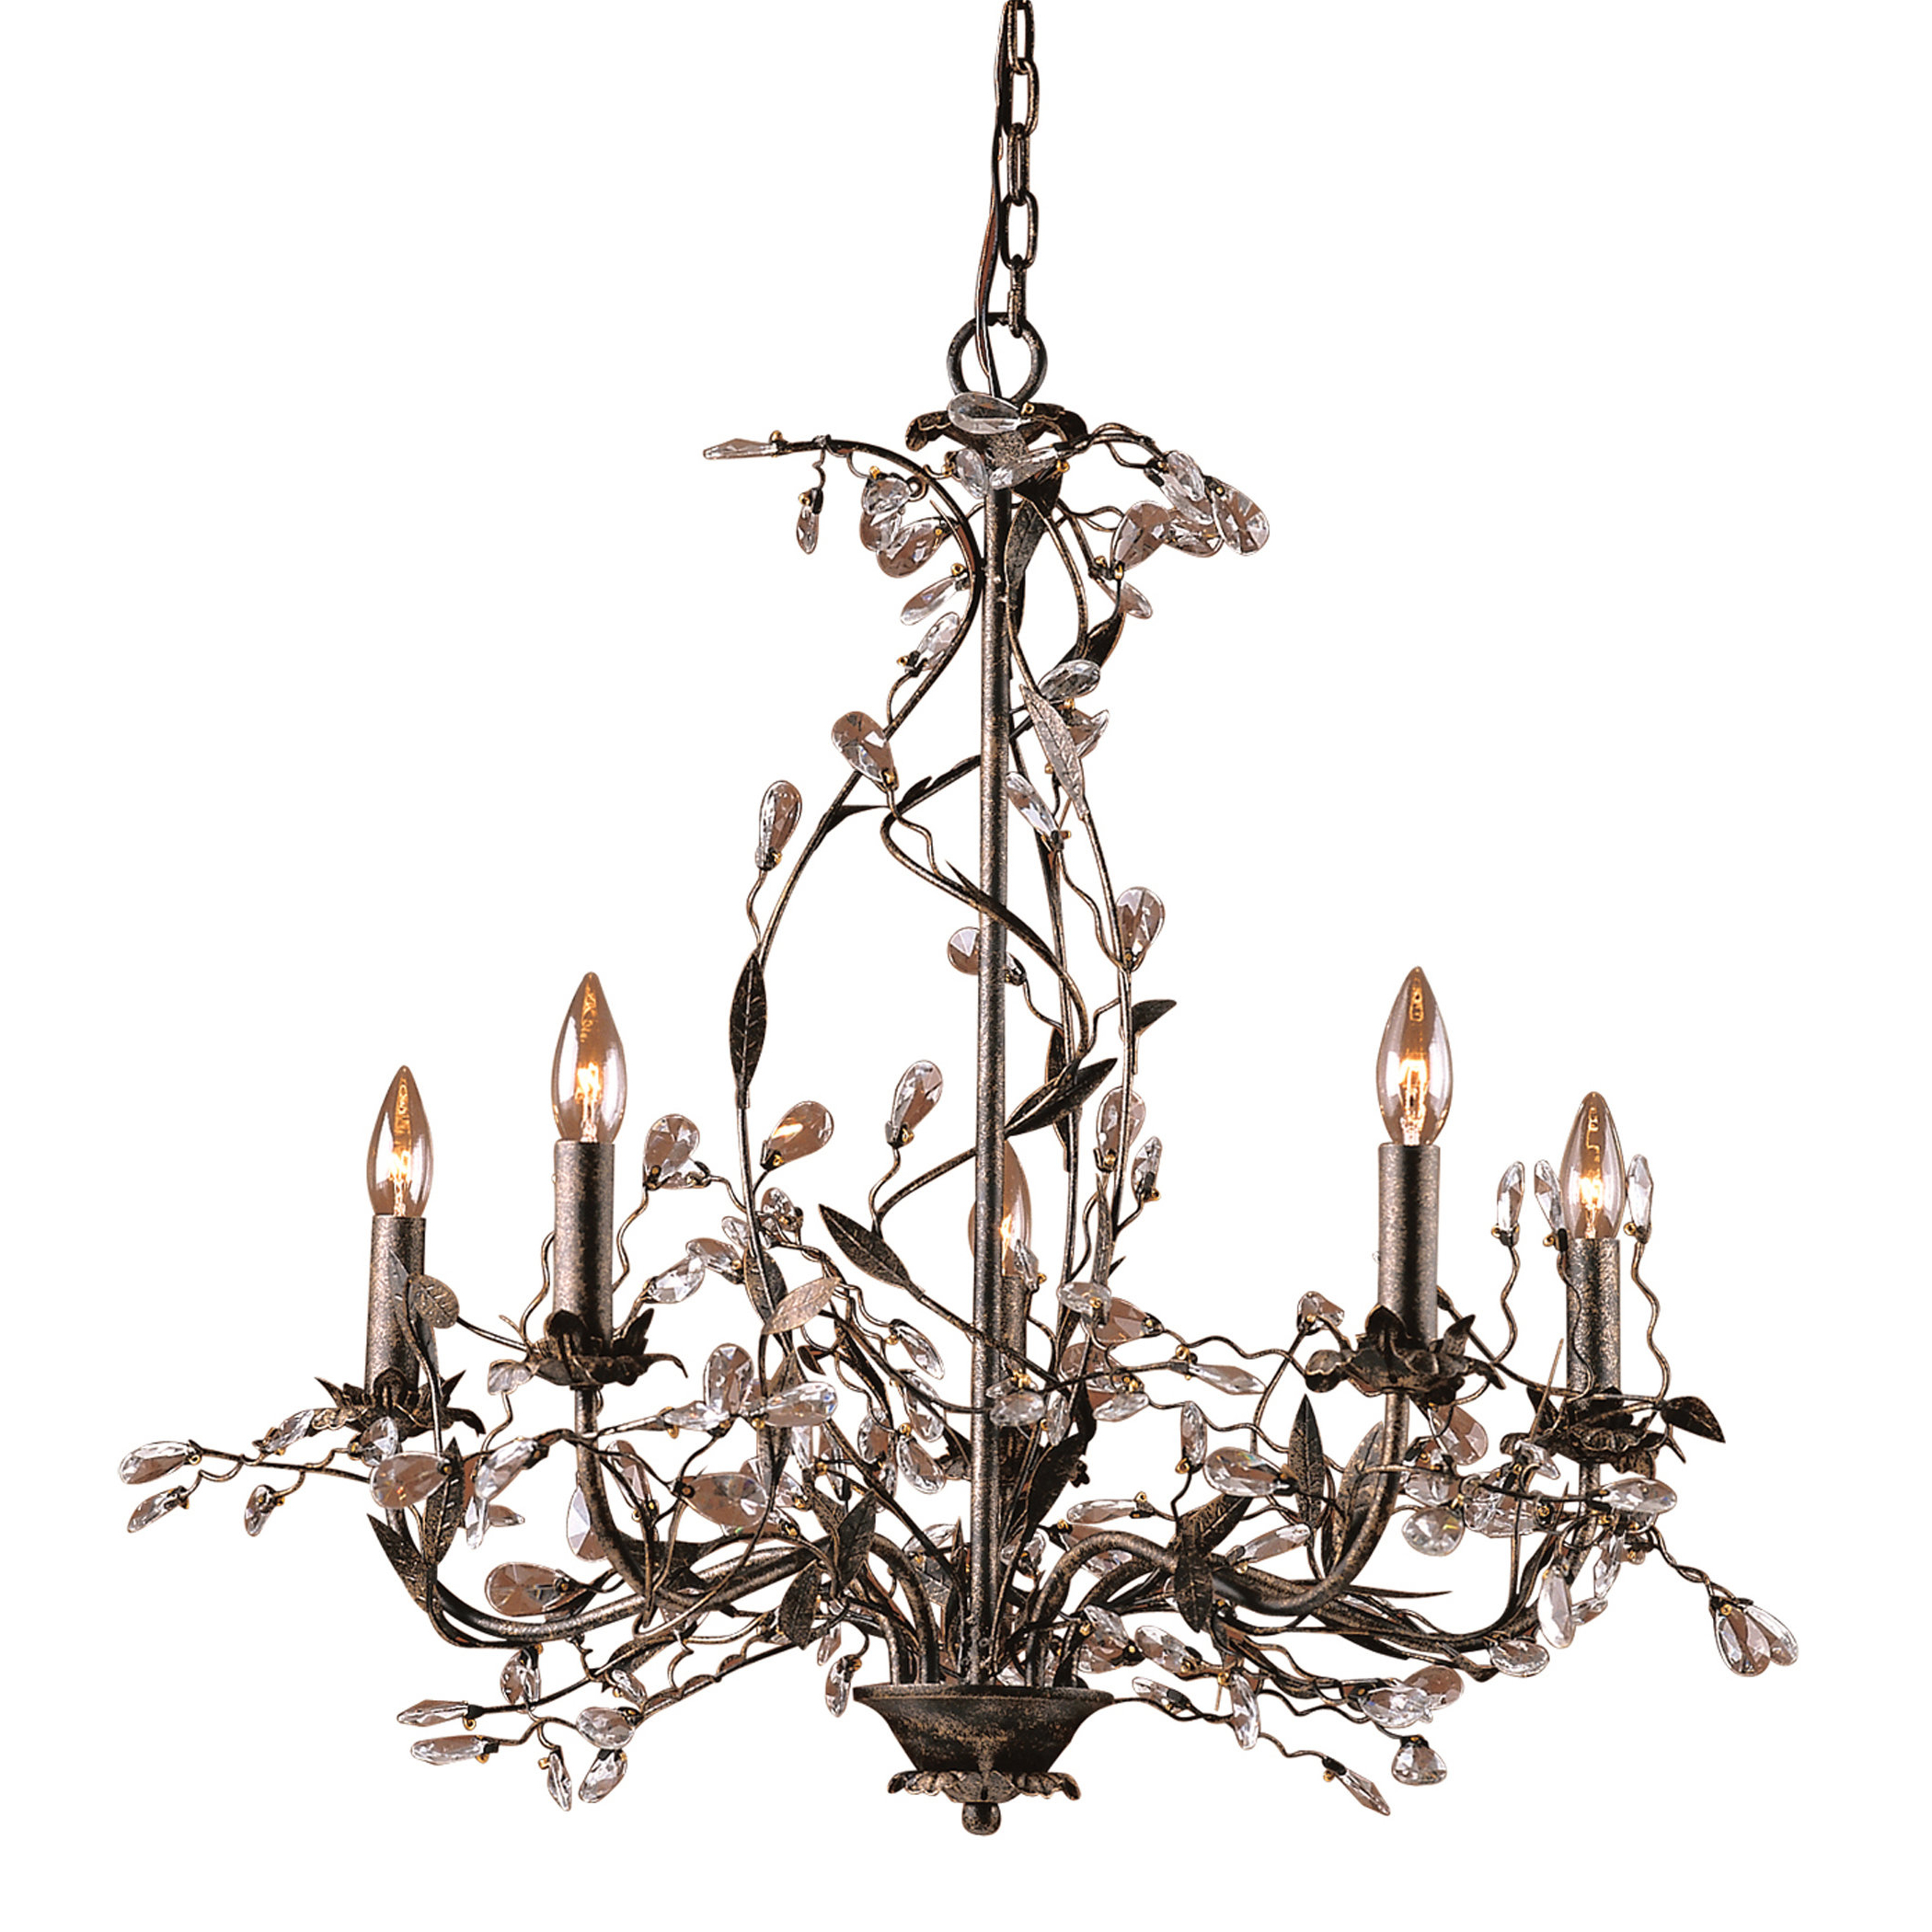 Popular Lorraine 5 Light Chandelier Within Hesse 5 Light Candle Style Chandeliers (View 17 of 20)